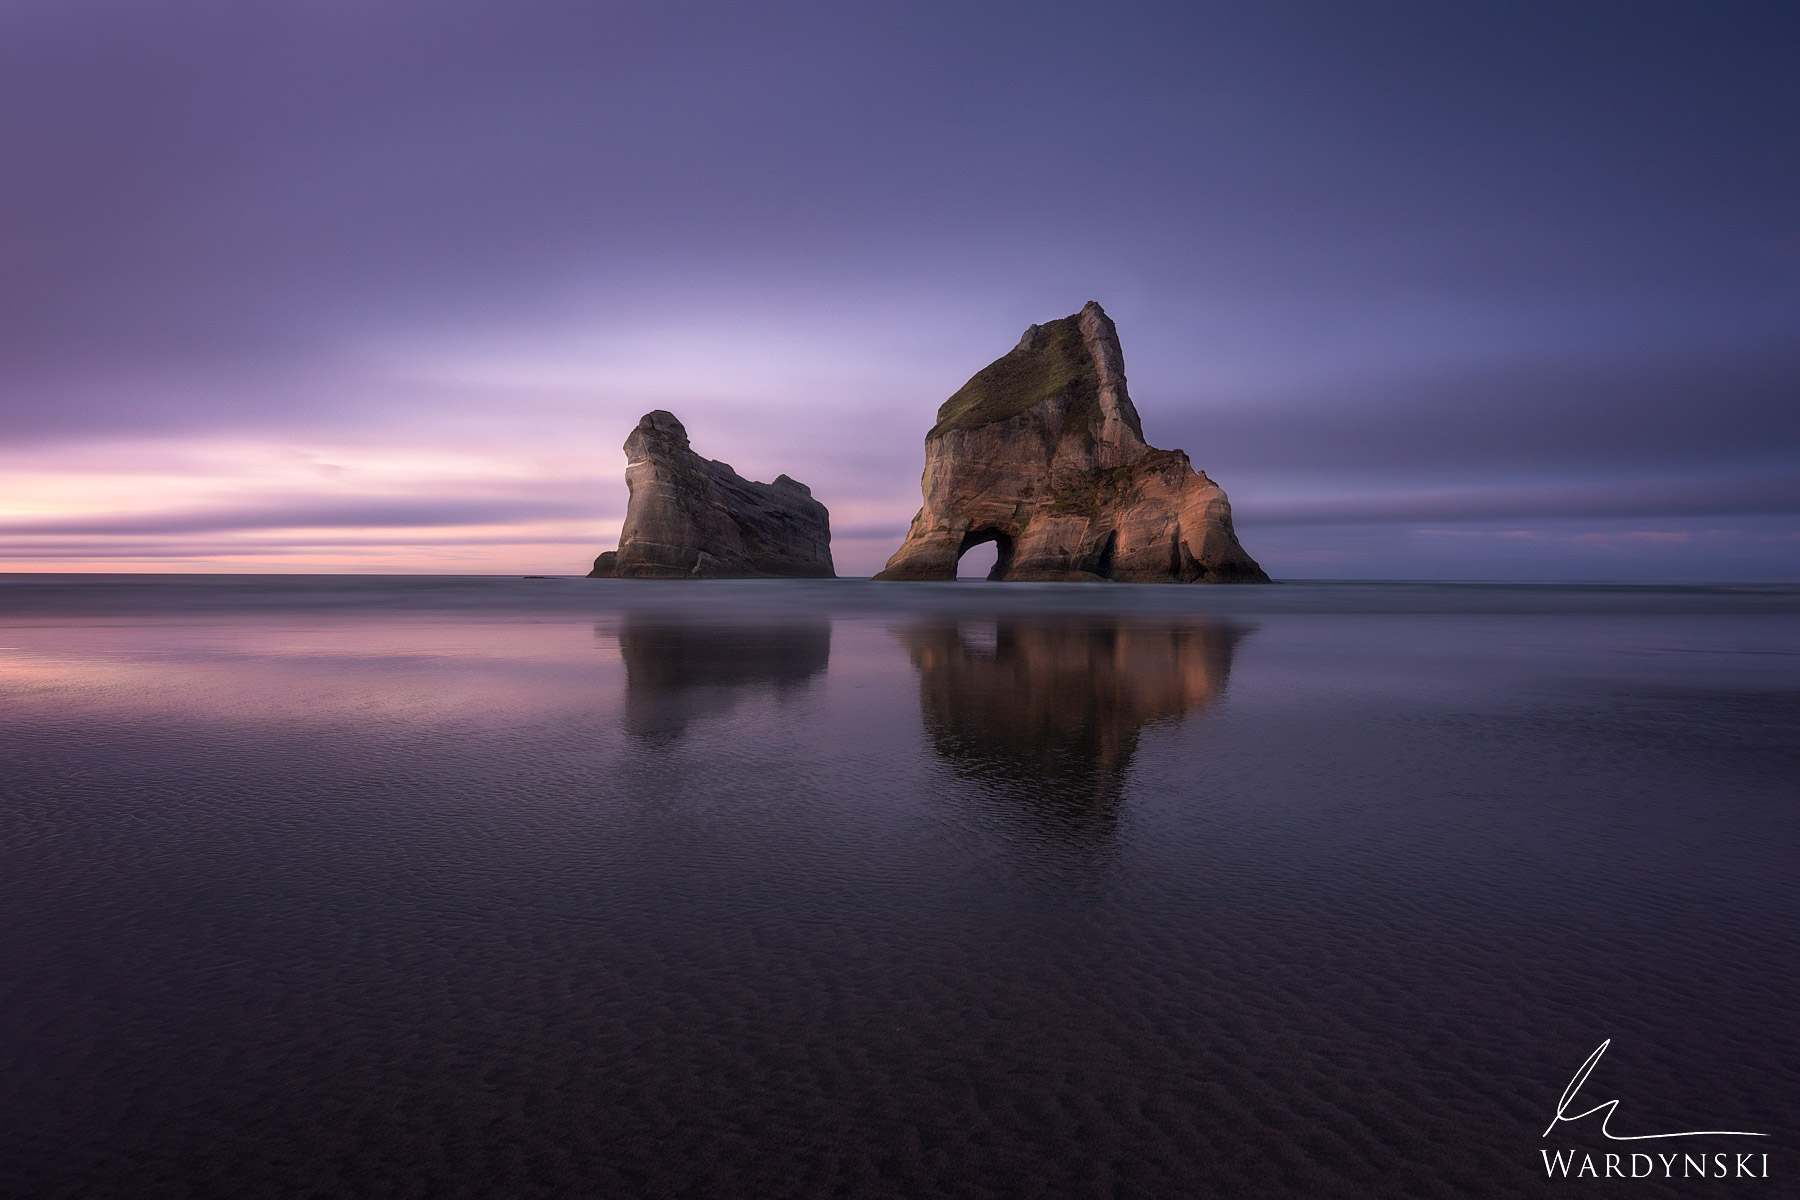 Fine Art Print | Limited Edition of 50  Wharariki Beach is the northern most part of the southern island of New Zealand. Just...